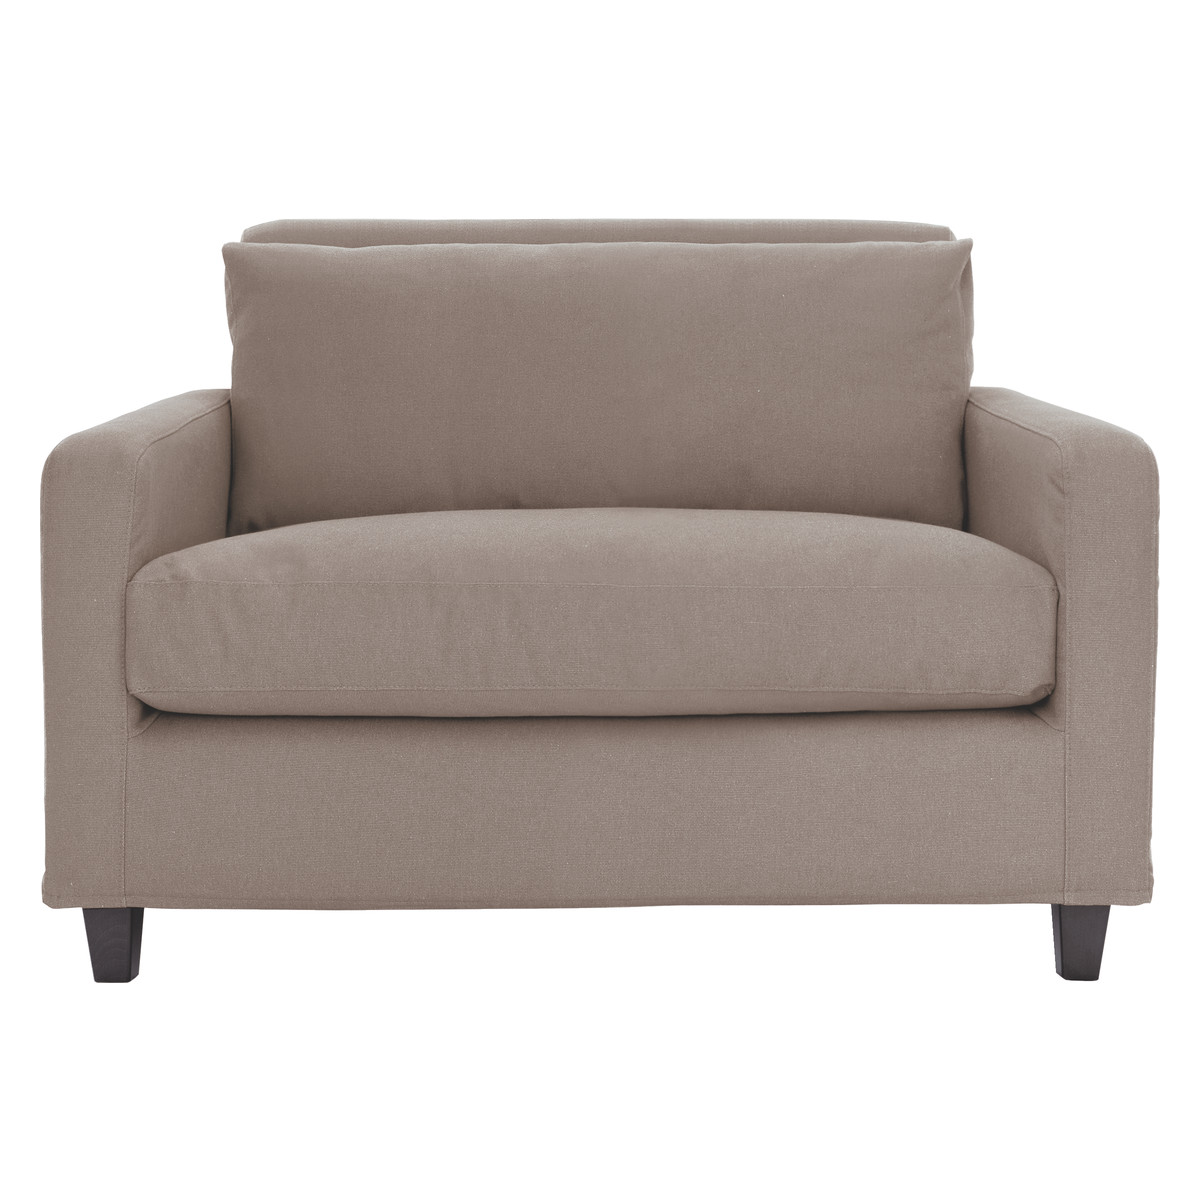 habitat chester sofa leather set for living room with price natural fabric compact dark stained